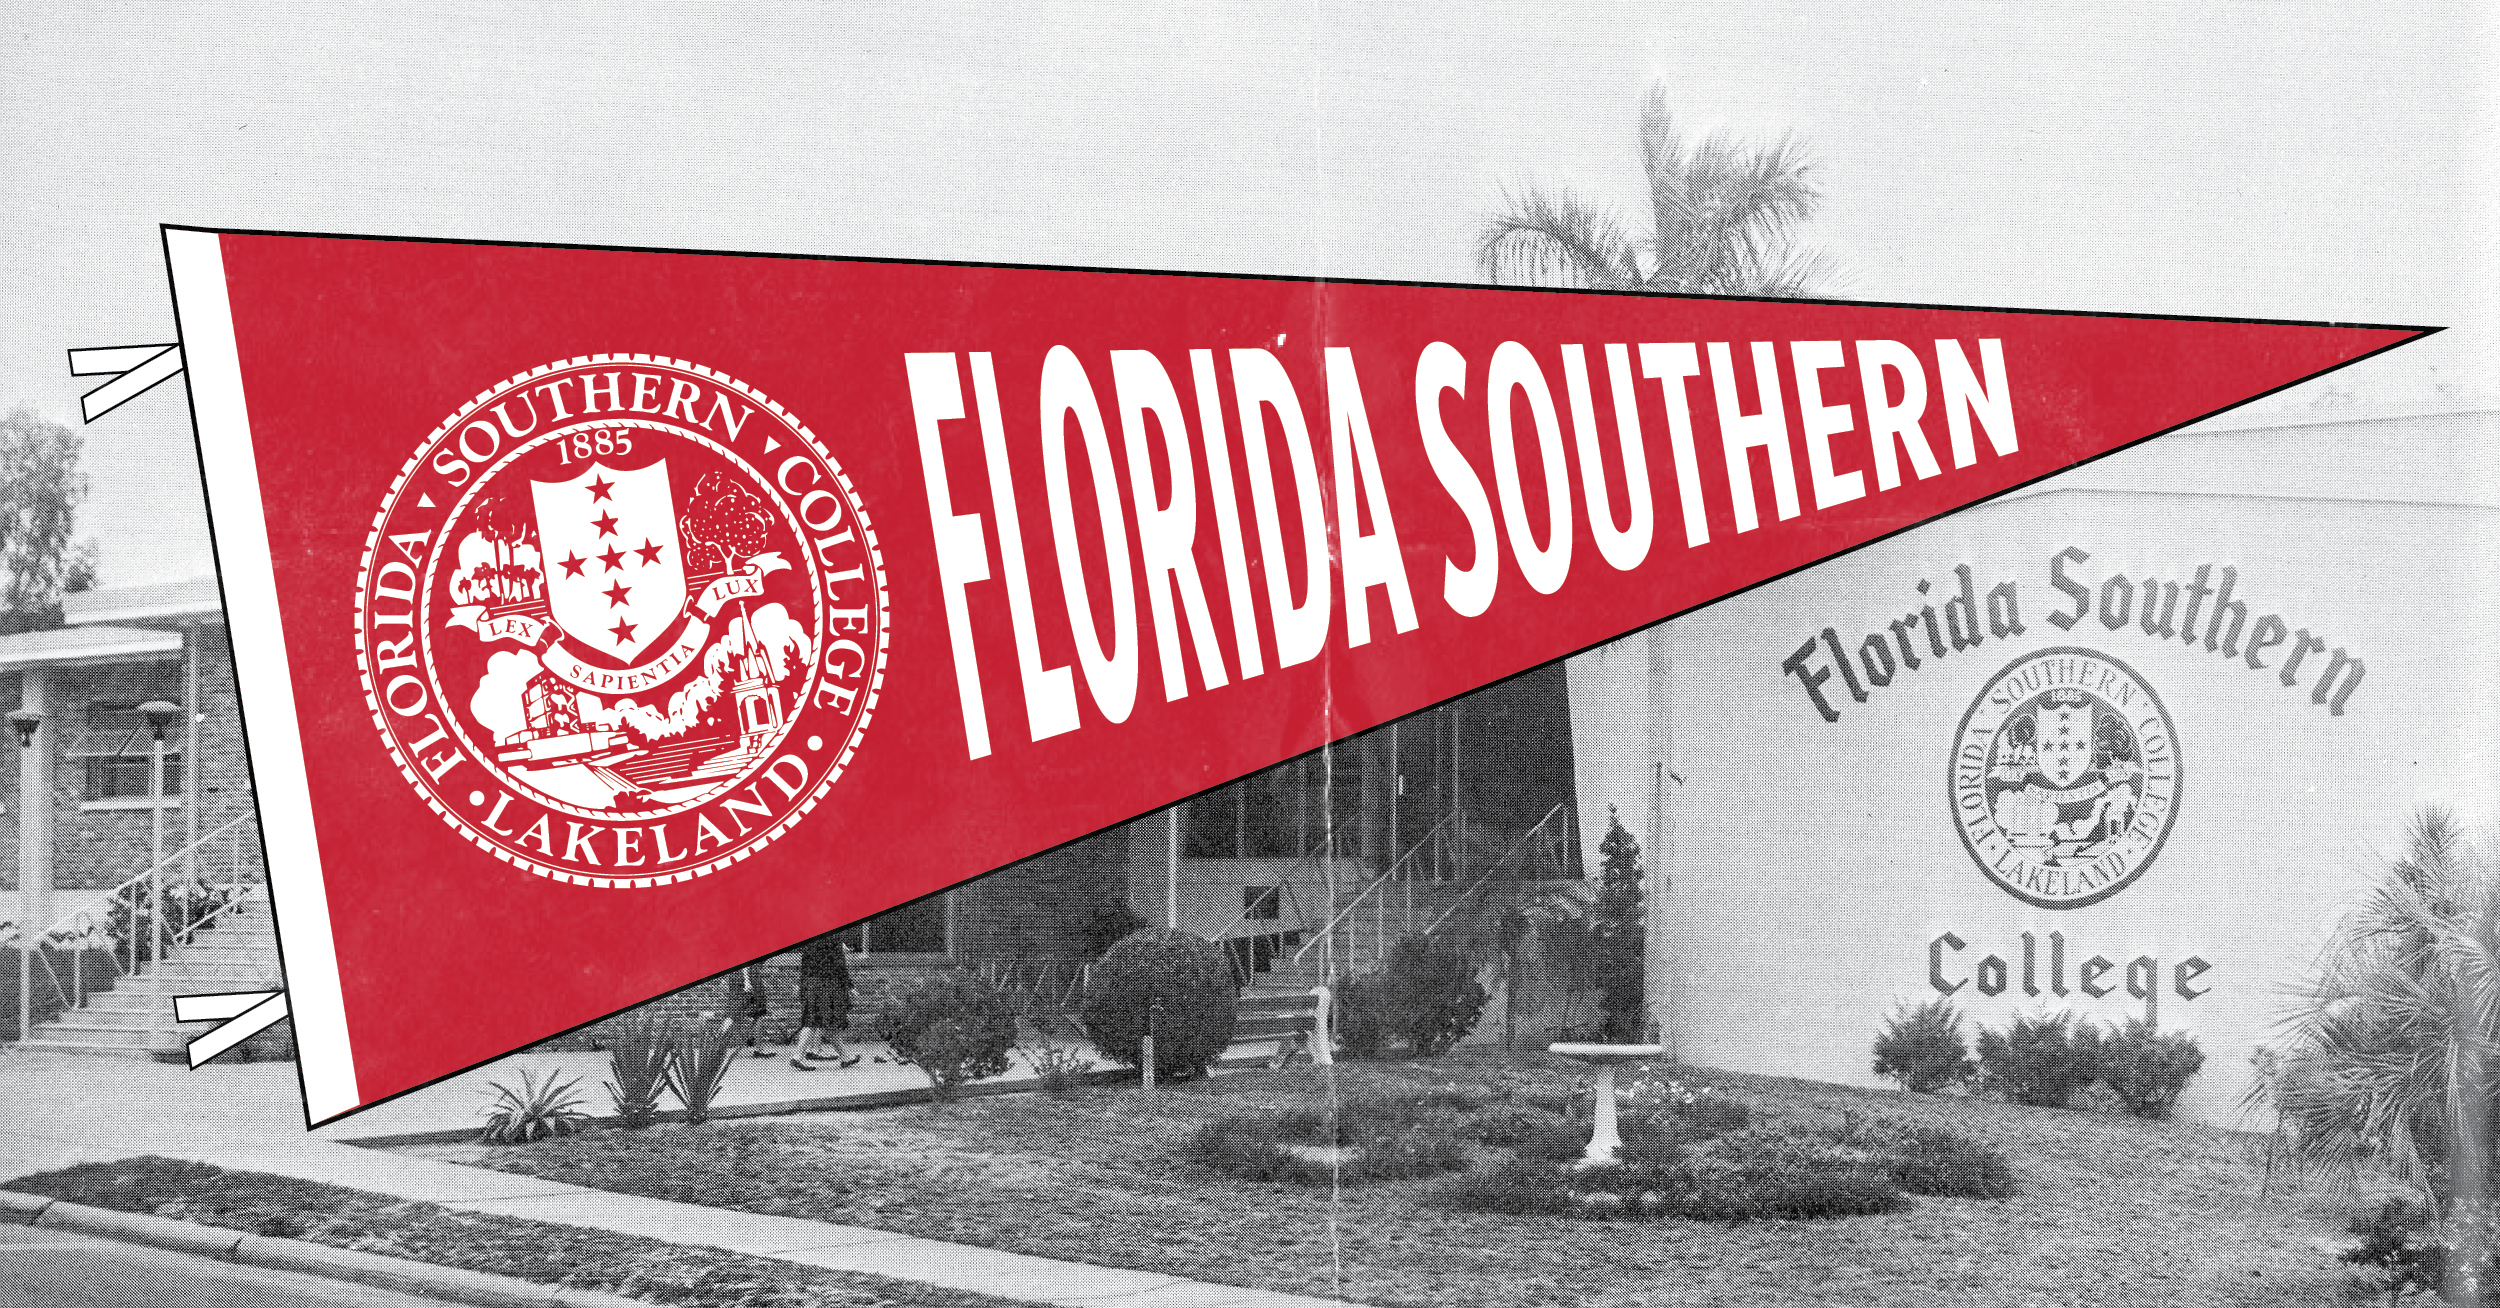 Homecoming 2018, greetings from florida where all road lead to florida southern college! march 16 to 18